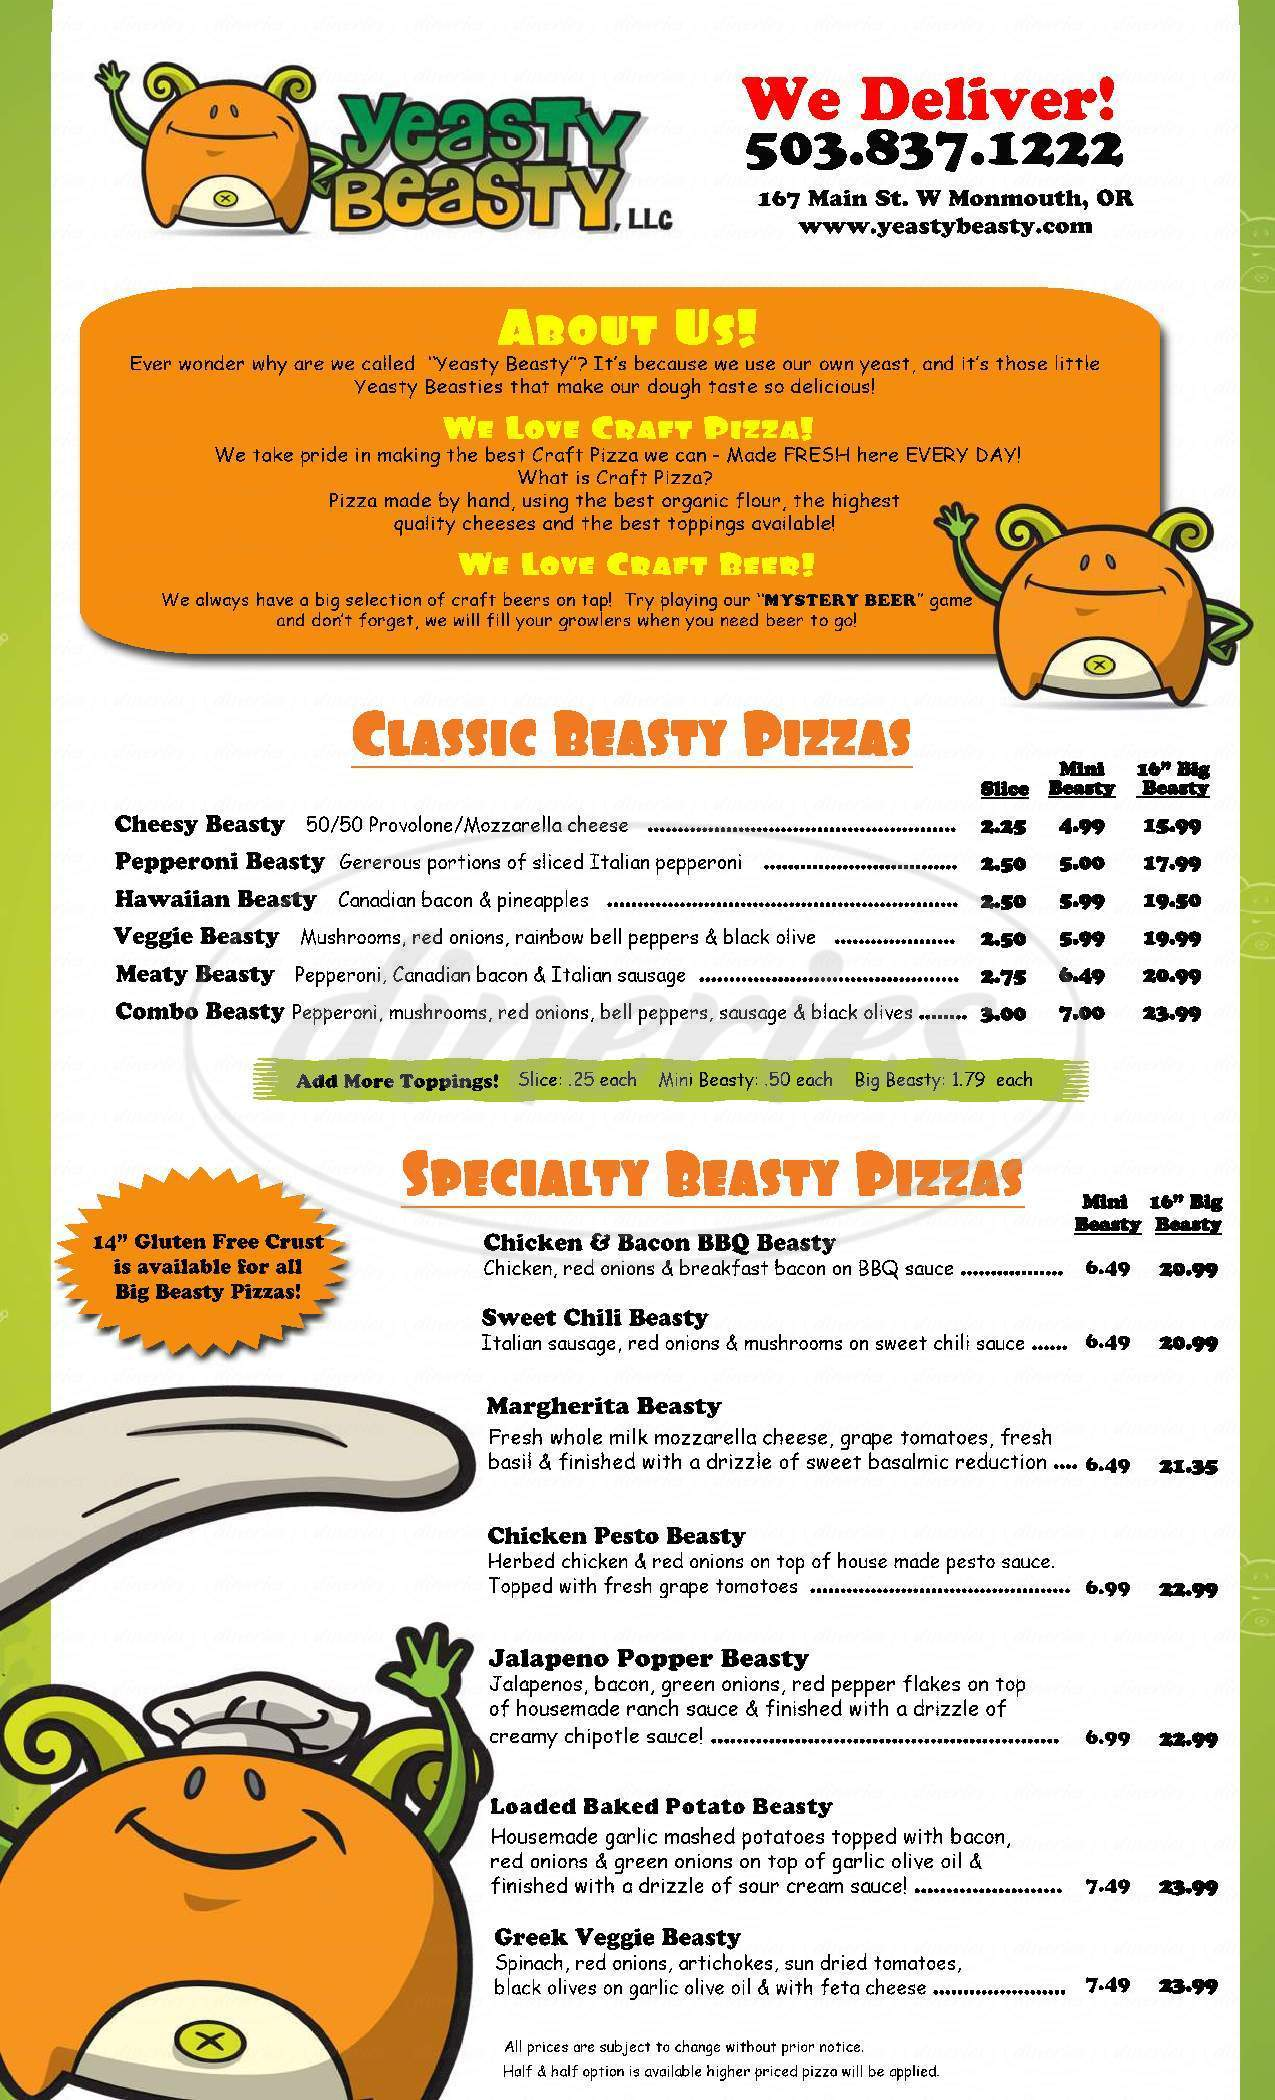 menu for Yeasty Beasty, LLC